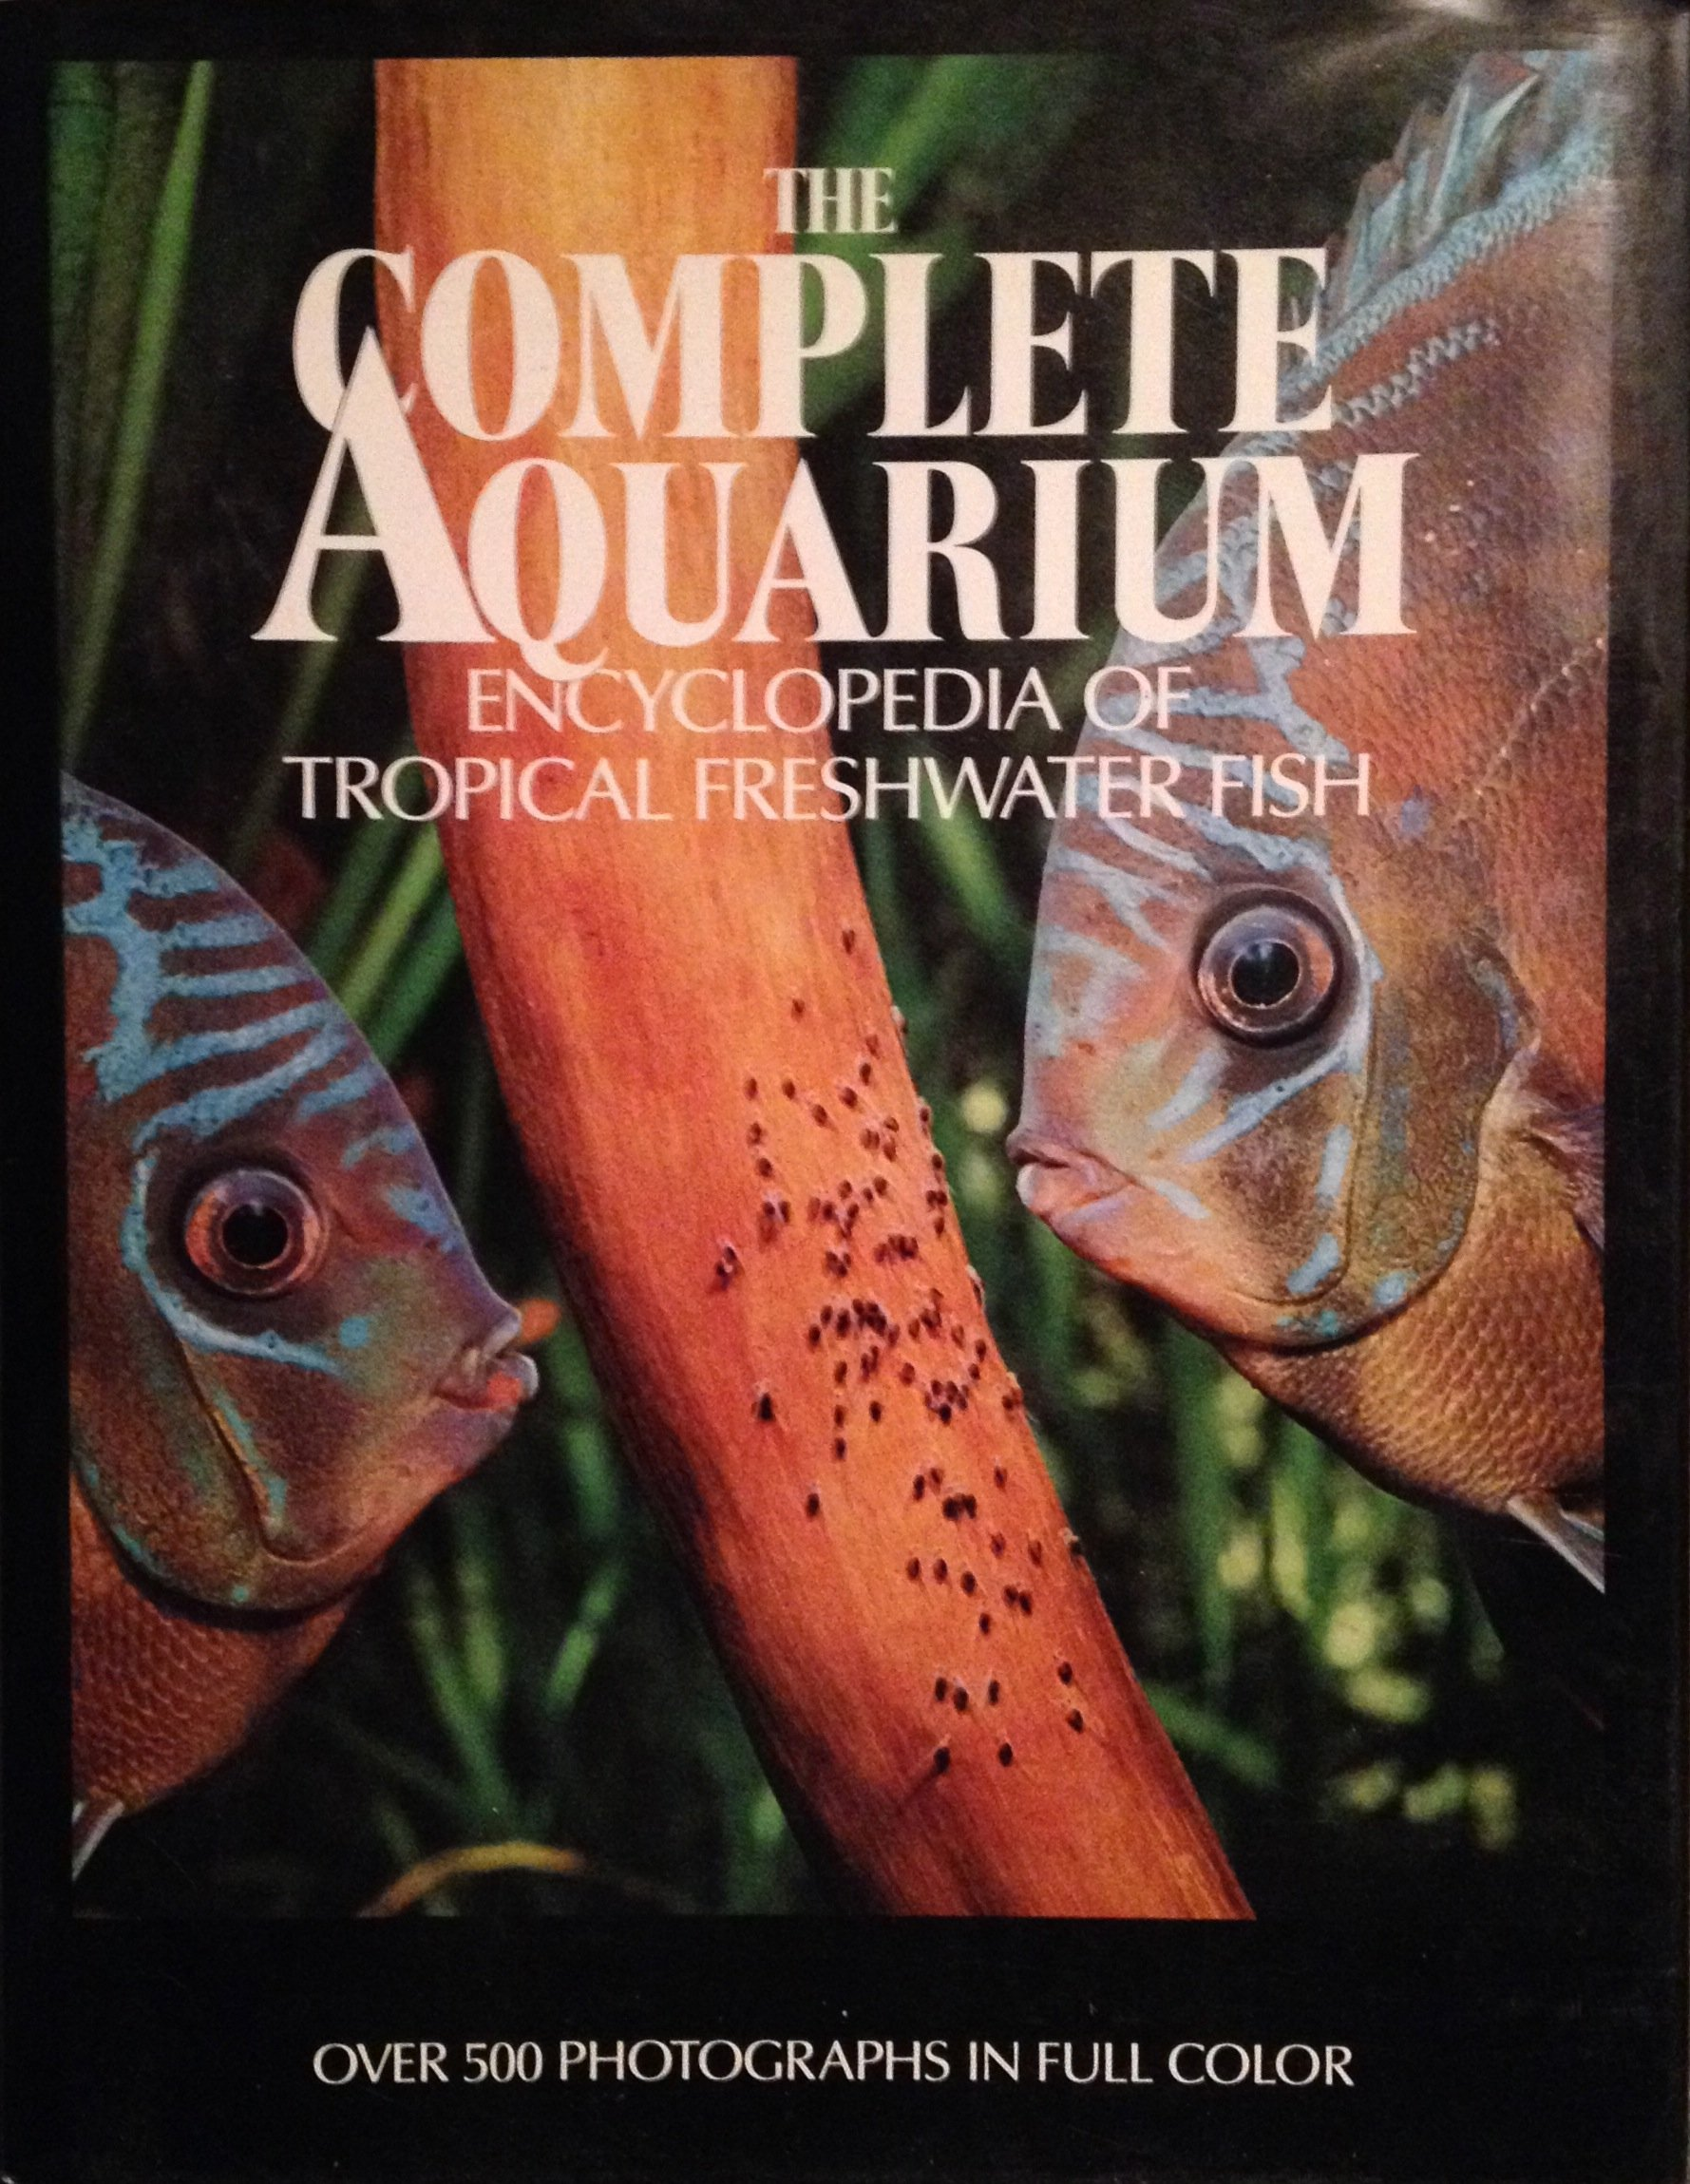 500 freshwater aquarium fish by greg jennings - The Complete Aquarium An Encyclopedia Of Tropical Freshwater Fish J Van Ramshorst 9781555217952 Amazon Com Books